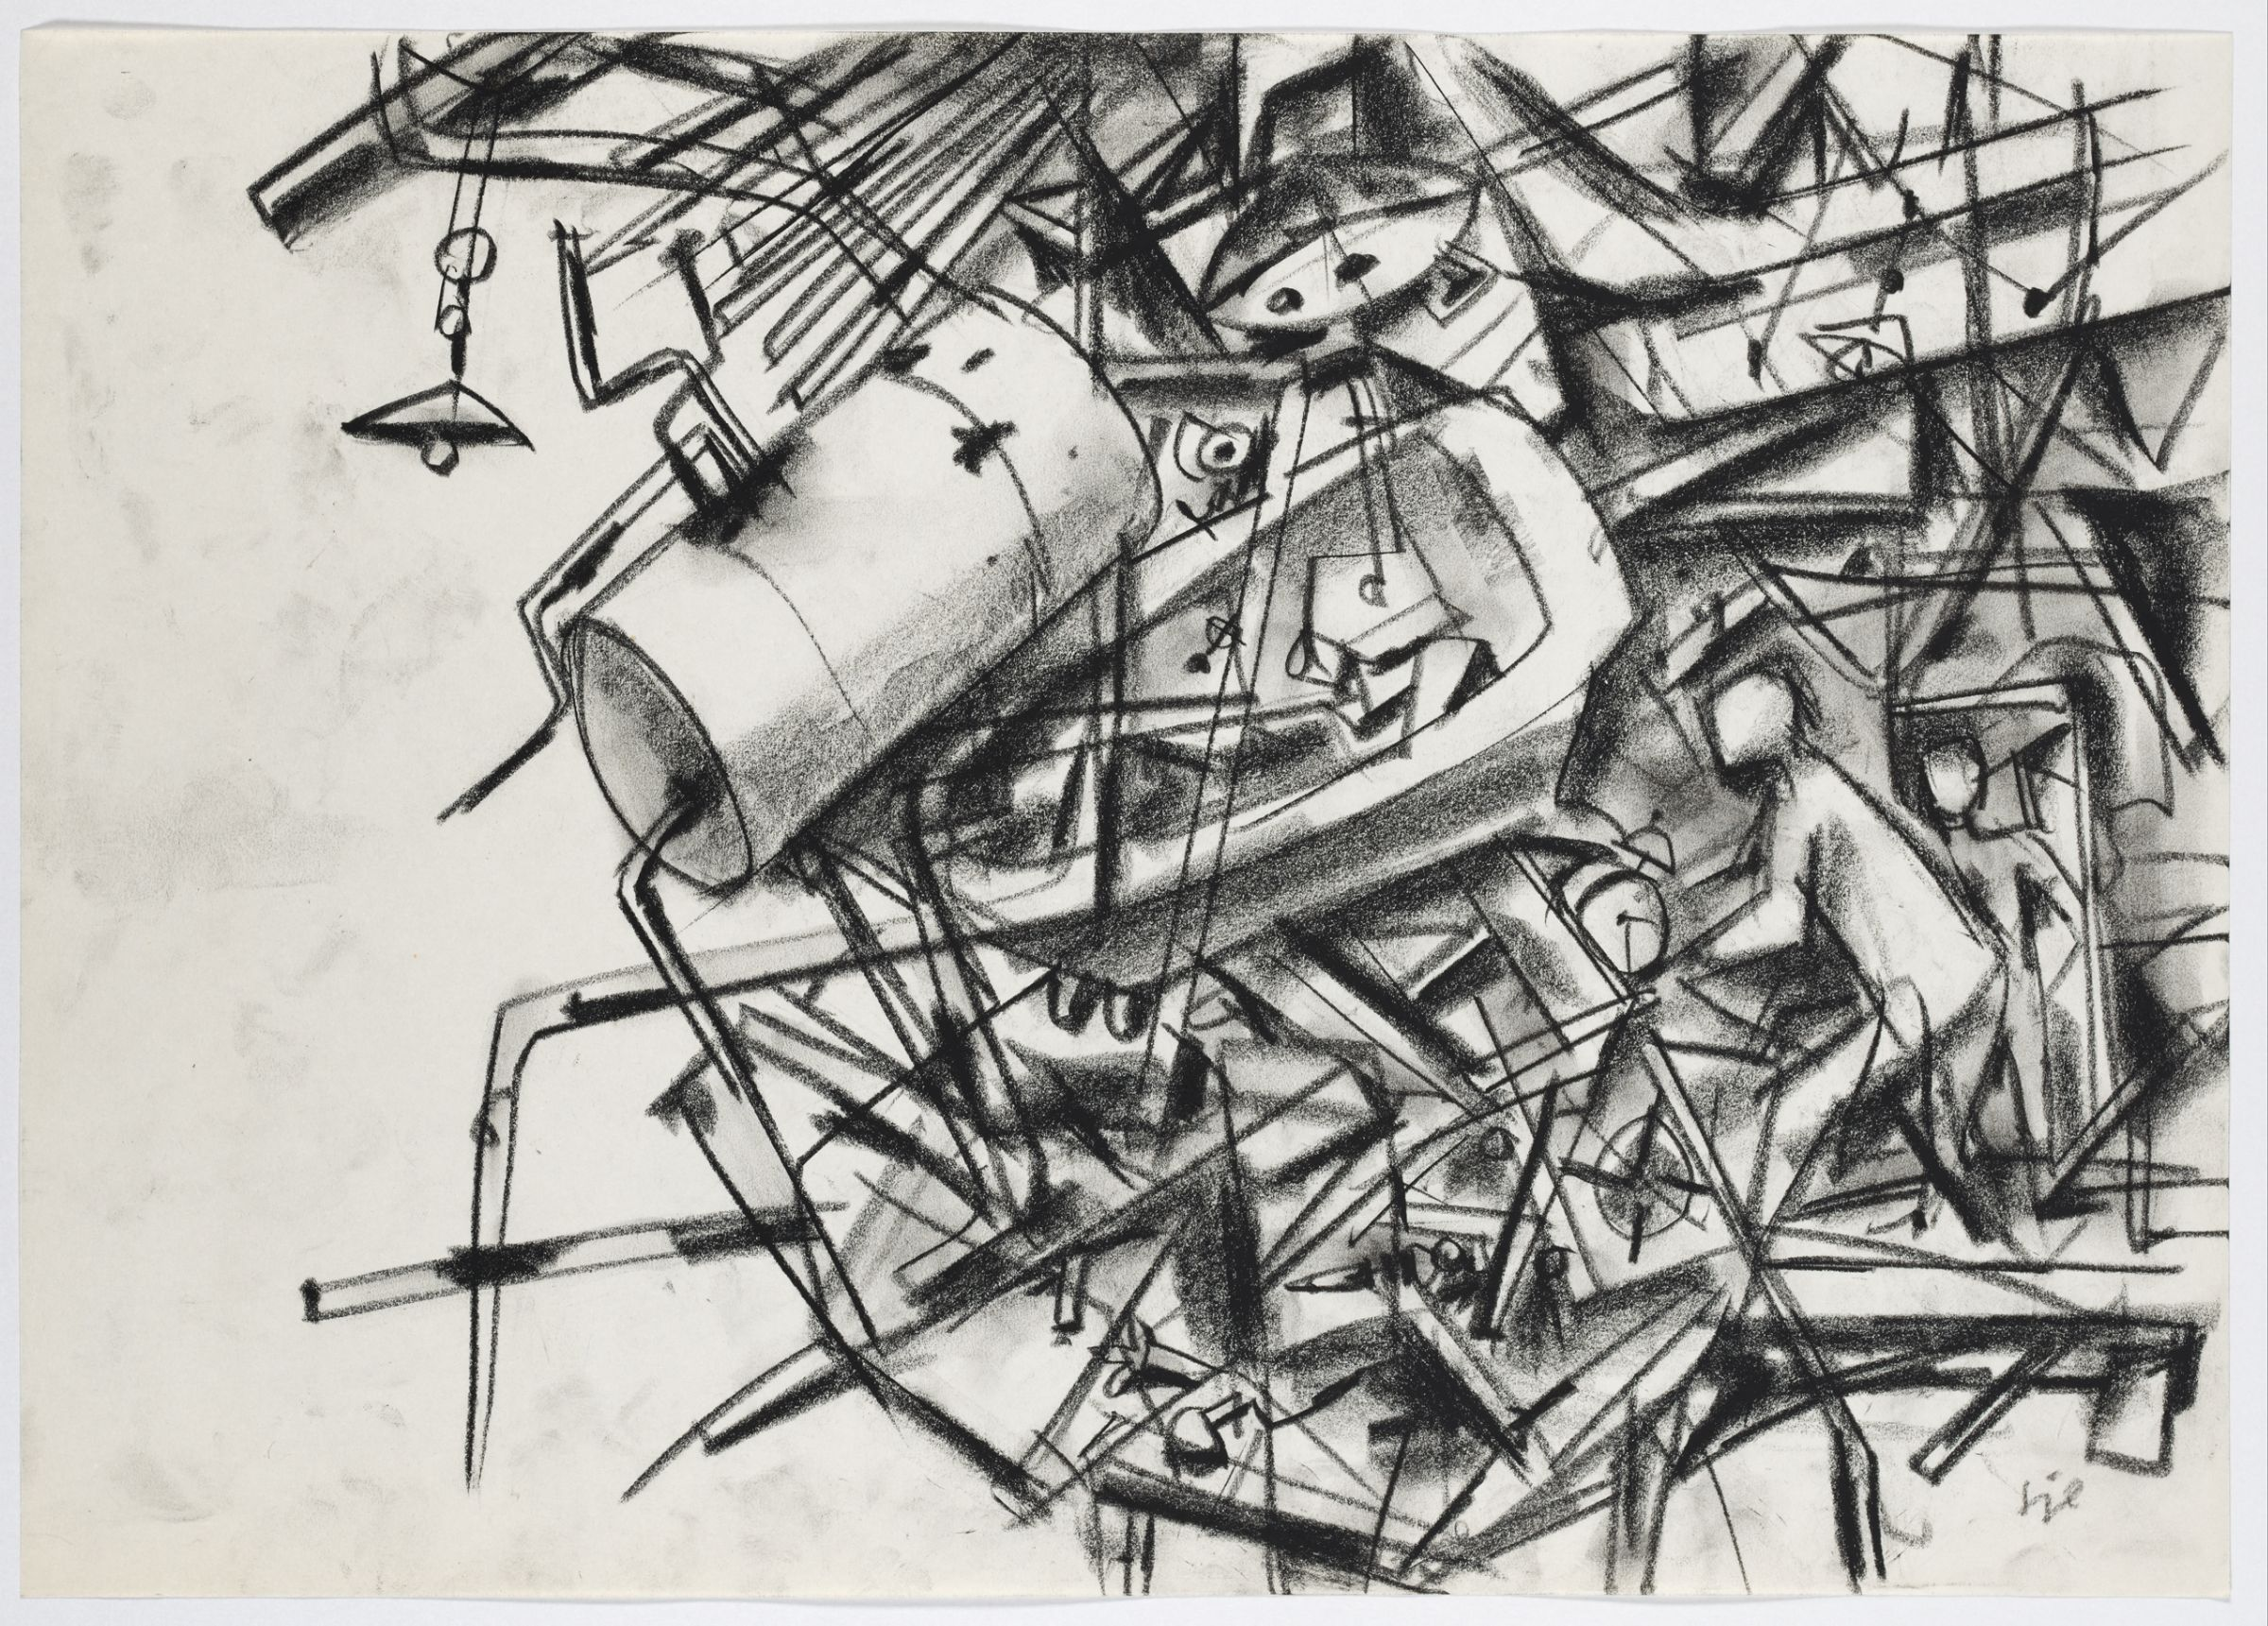 Erwin Spuler, Untitled, c. 1945/46. Black chalk on white wove paper. Harvard Art Museums/Busch-Reisinger Museum, Busch-Reisinger Museum Acquisition Fund, 2017.50.